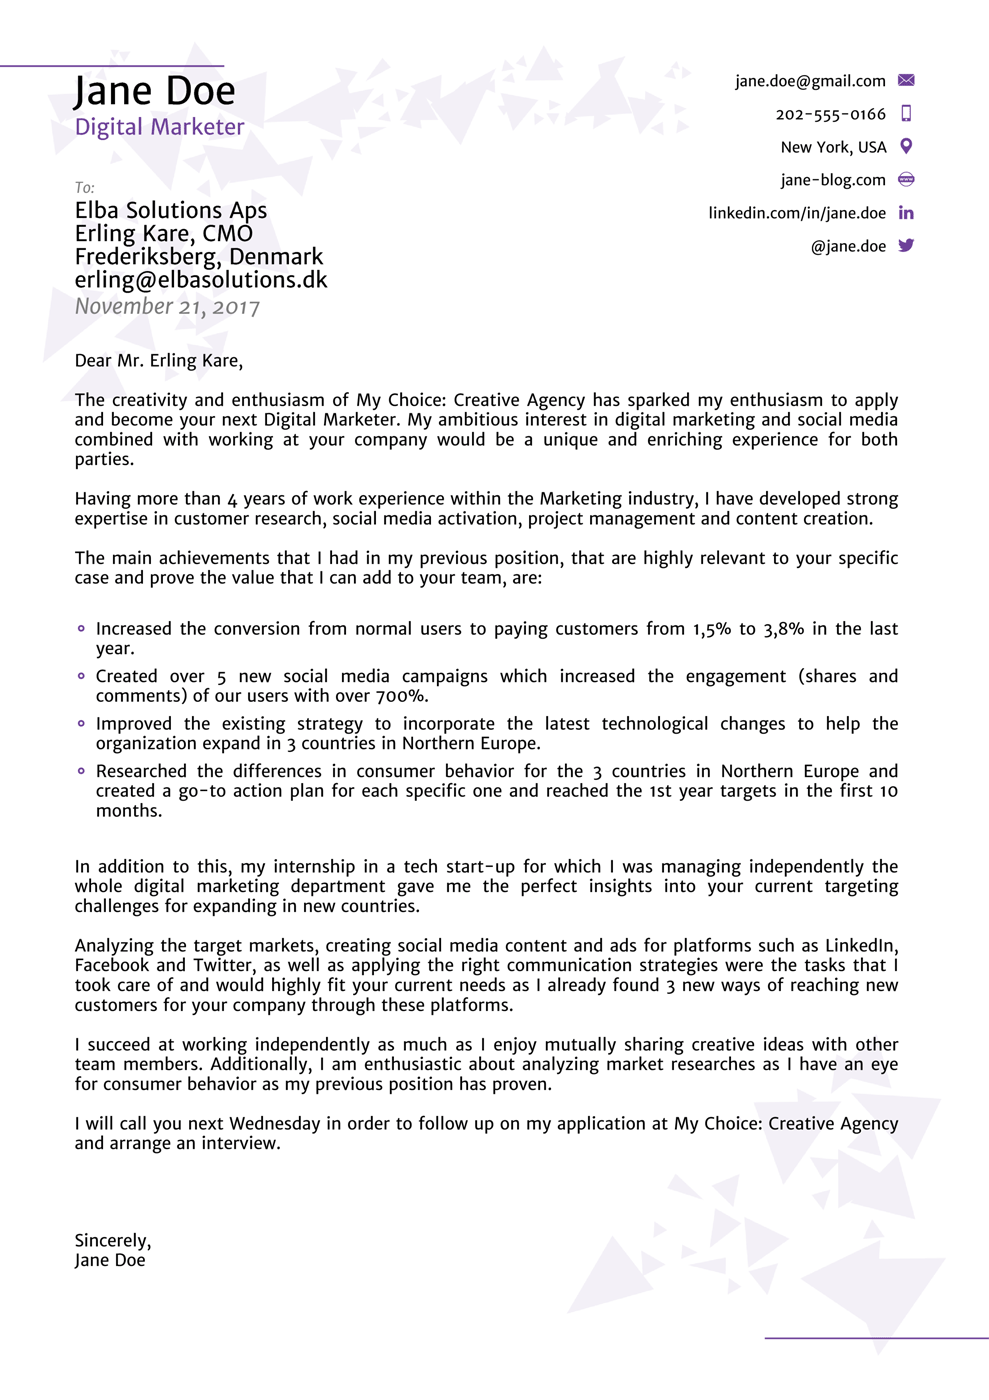 A Cover Letter Template Sample